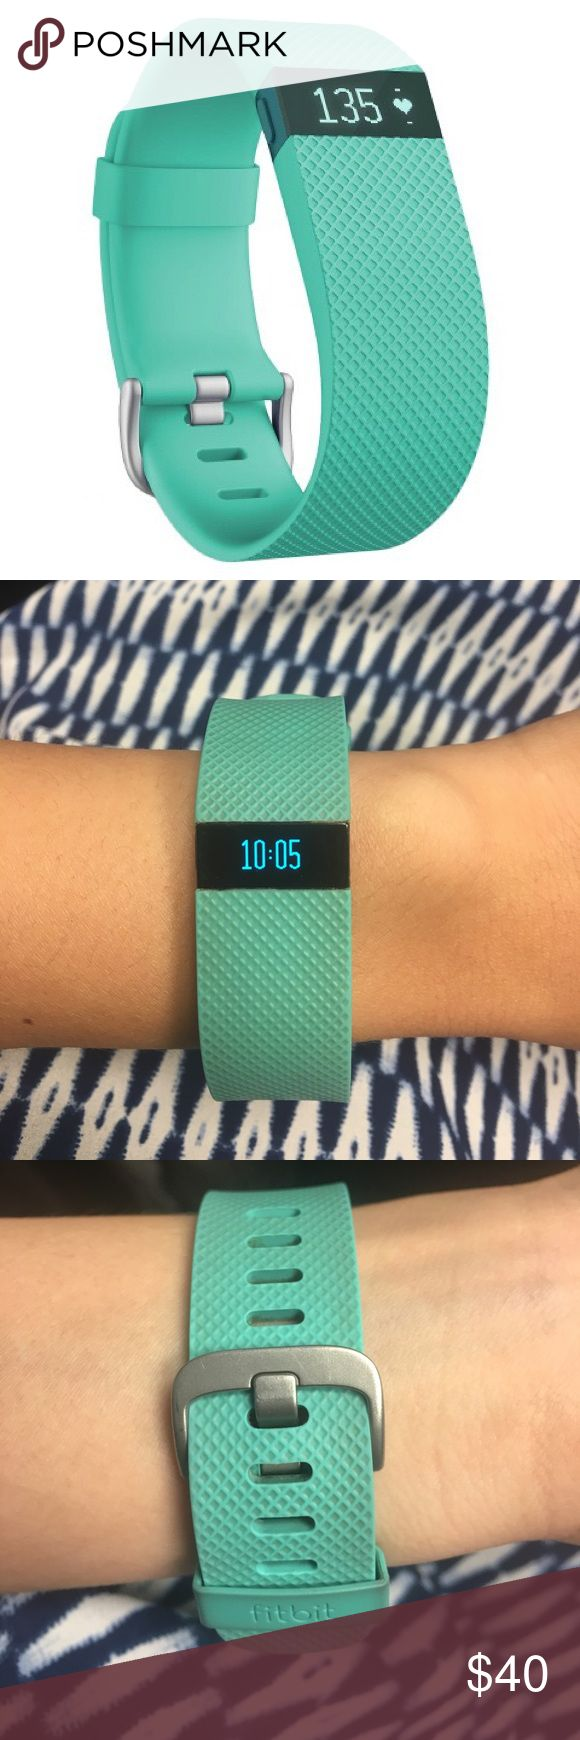 FitBit Charge HR | Turquoise PREOWNED Fitbit Charge HR Fitness Tracker and Heart Rate Monitor (comes with charging equipment)   Monitors heart rate from the wrist Gives feedback on heart rate zones Tracks distance, calories burned, active time, floors climbed, and steps  Monitors sleep patterns  Integrates with Smartphones  OLED display shows notifications, stats, and time Shows caller names and number Syncs wirelessly and automatically to computer  Some signs of wear on face and on slider…